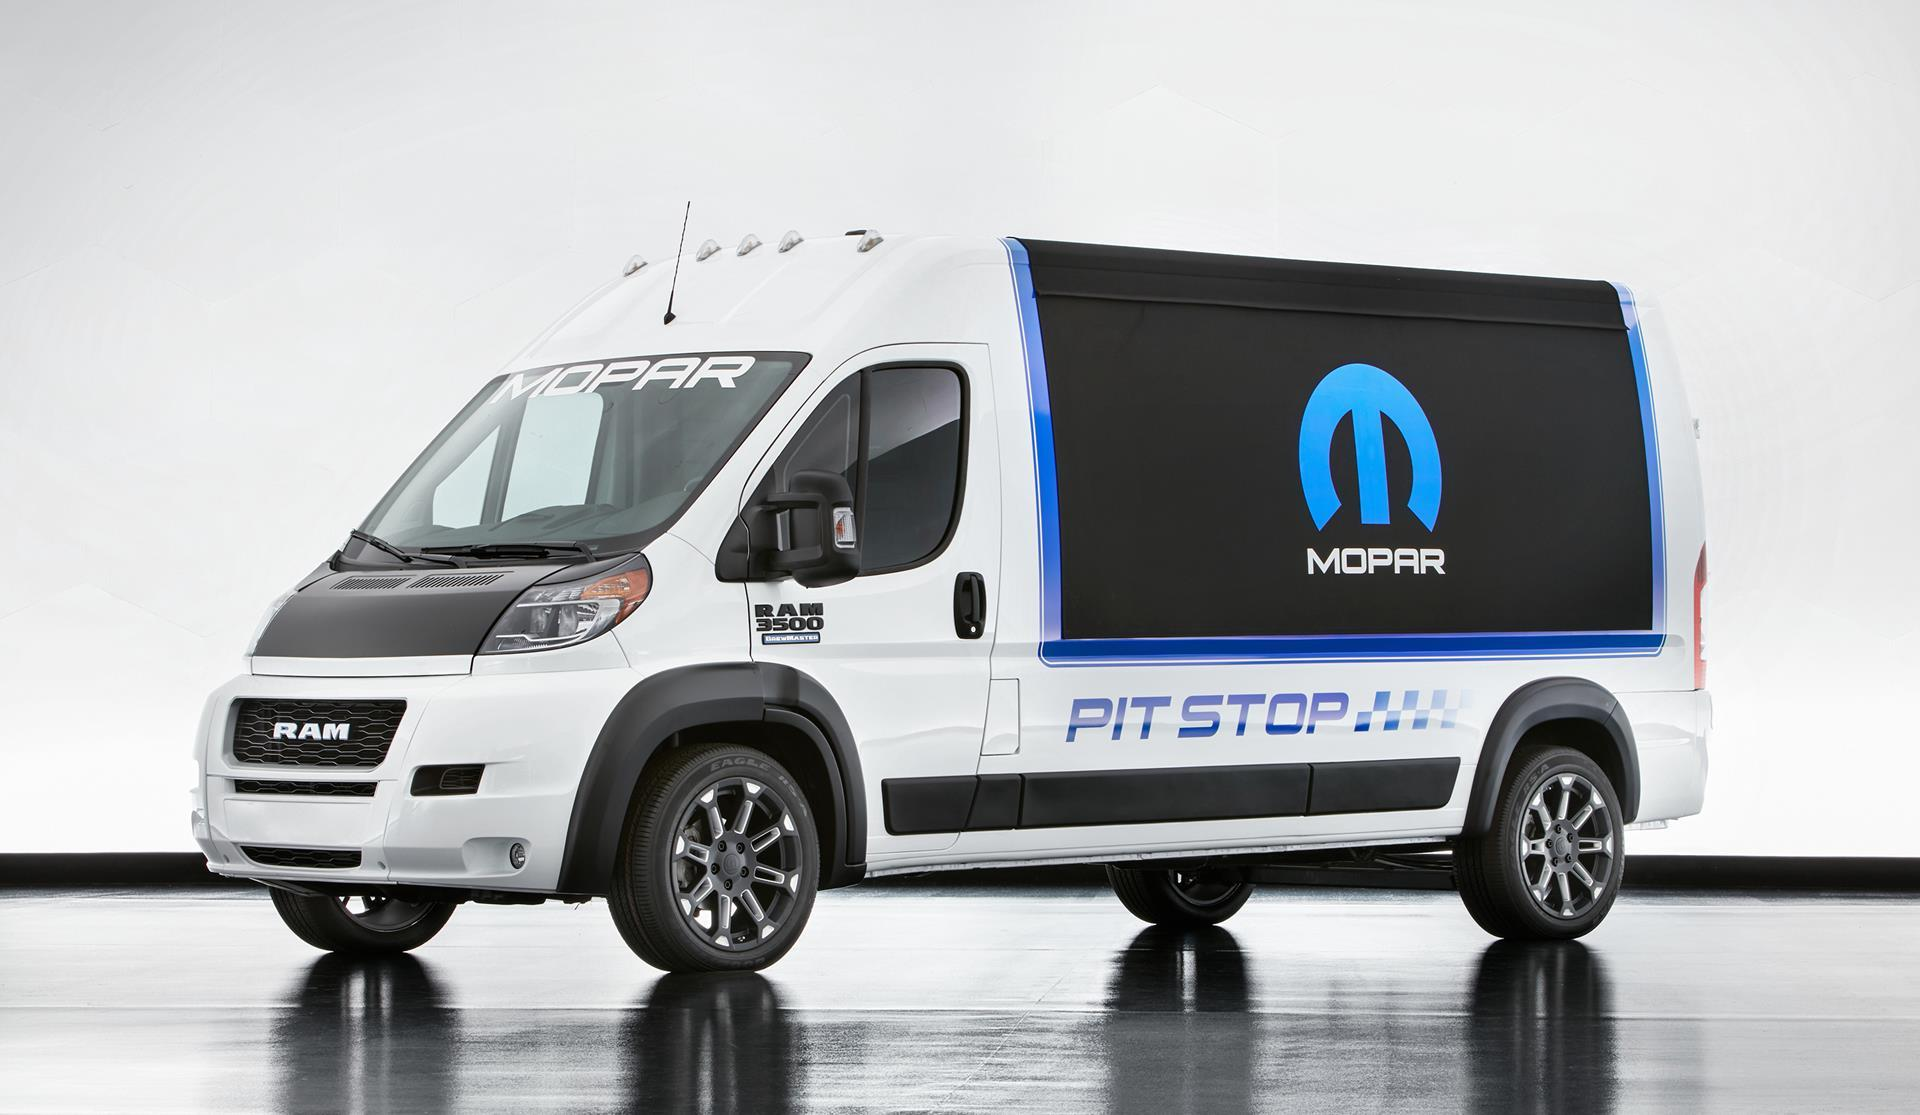 2016 Ram Promaster Pit Stop News And Information